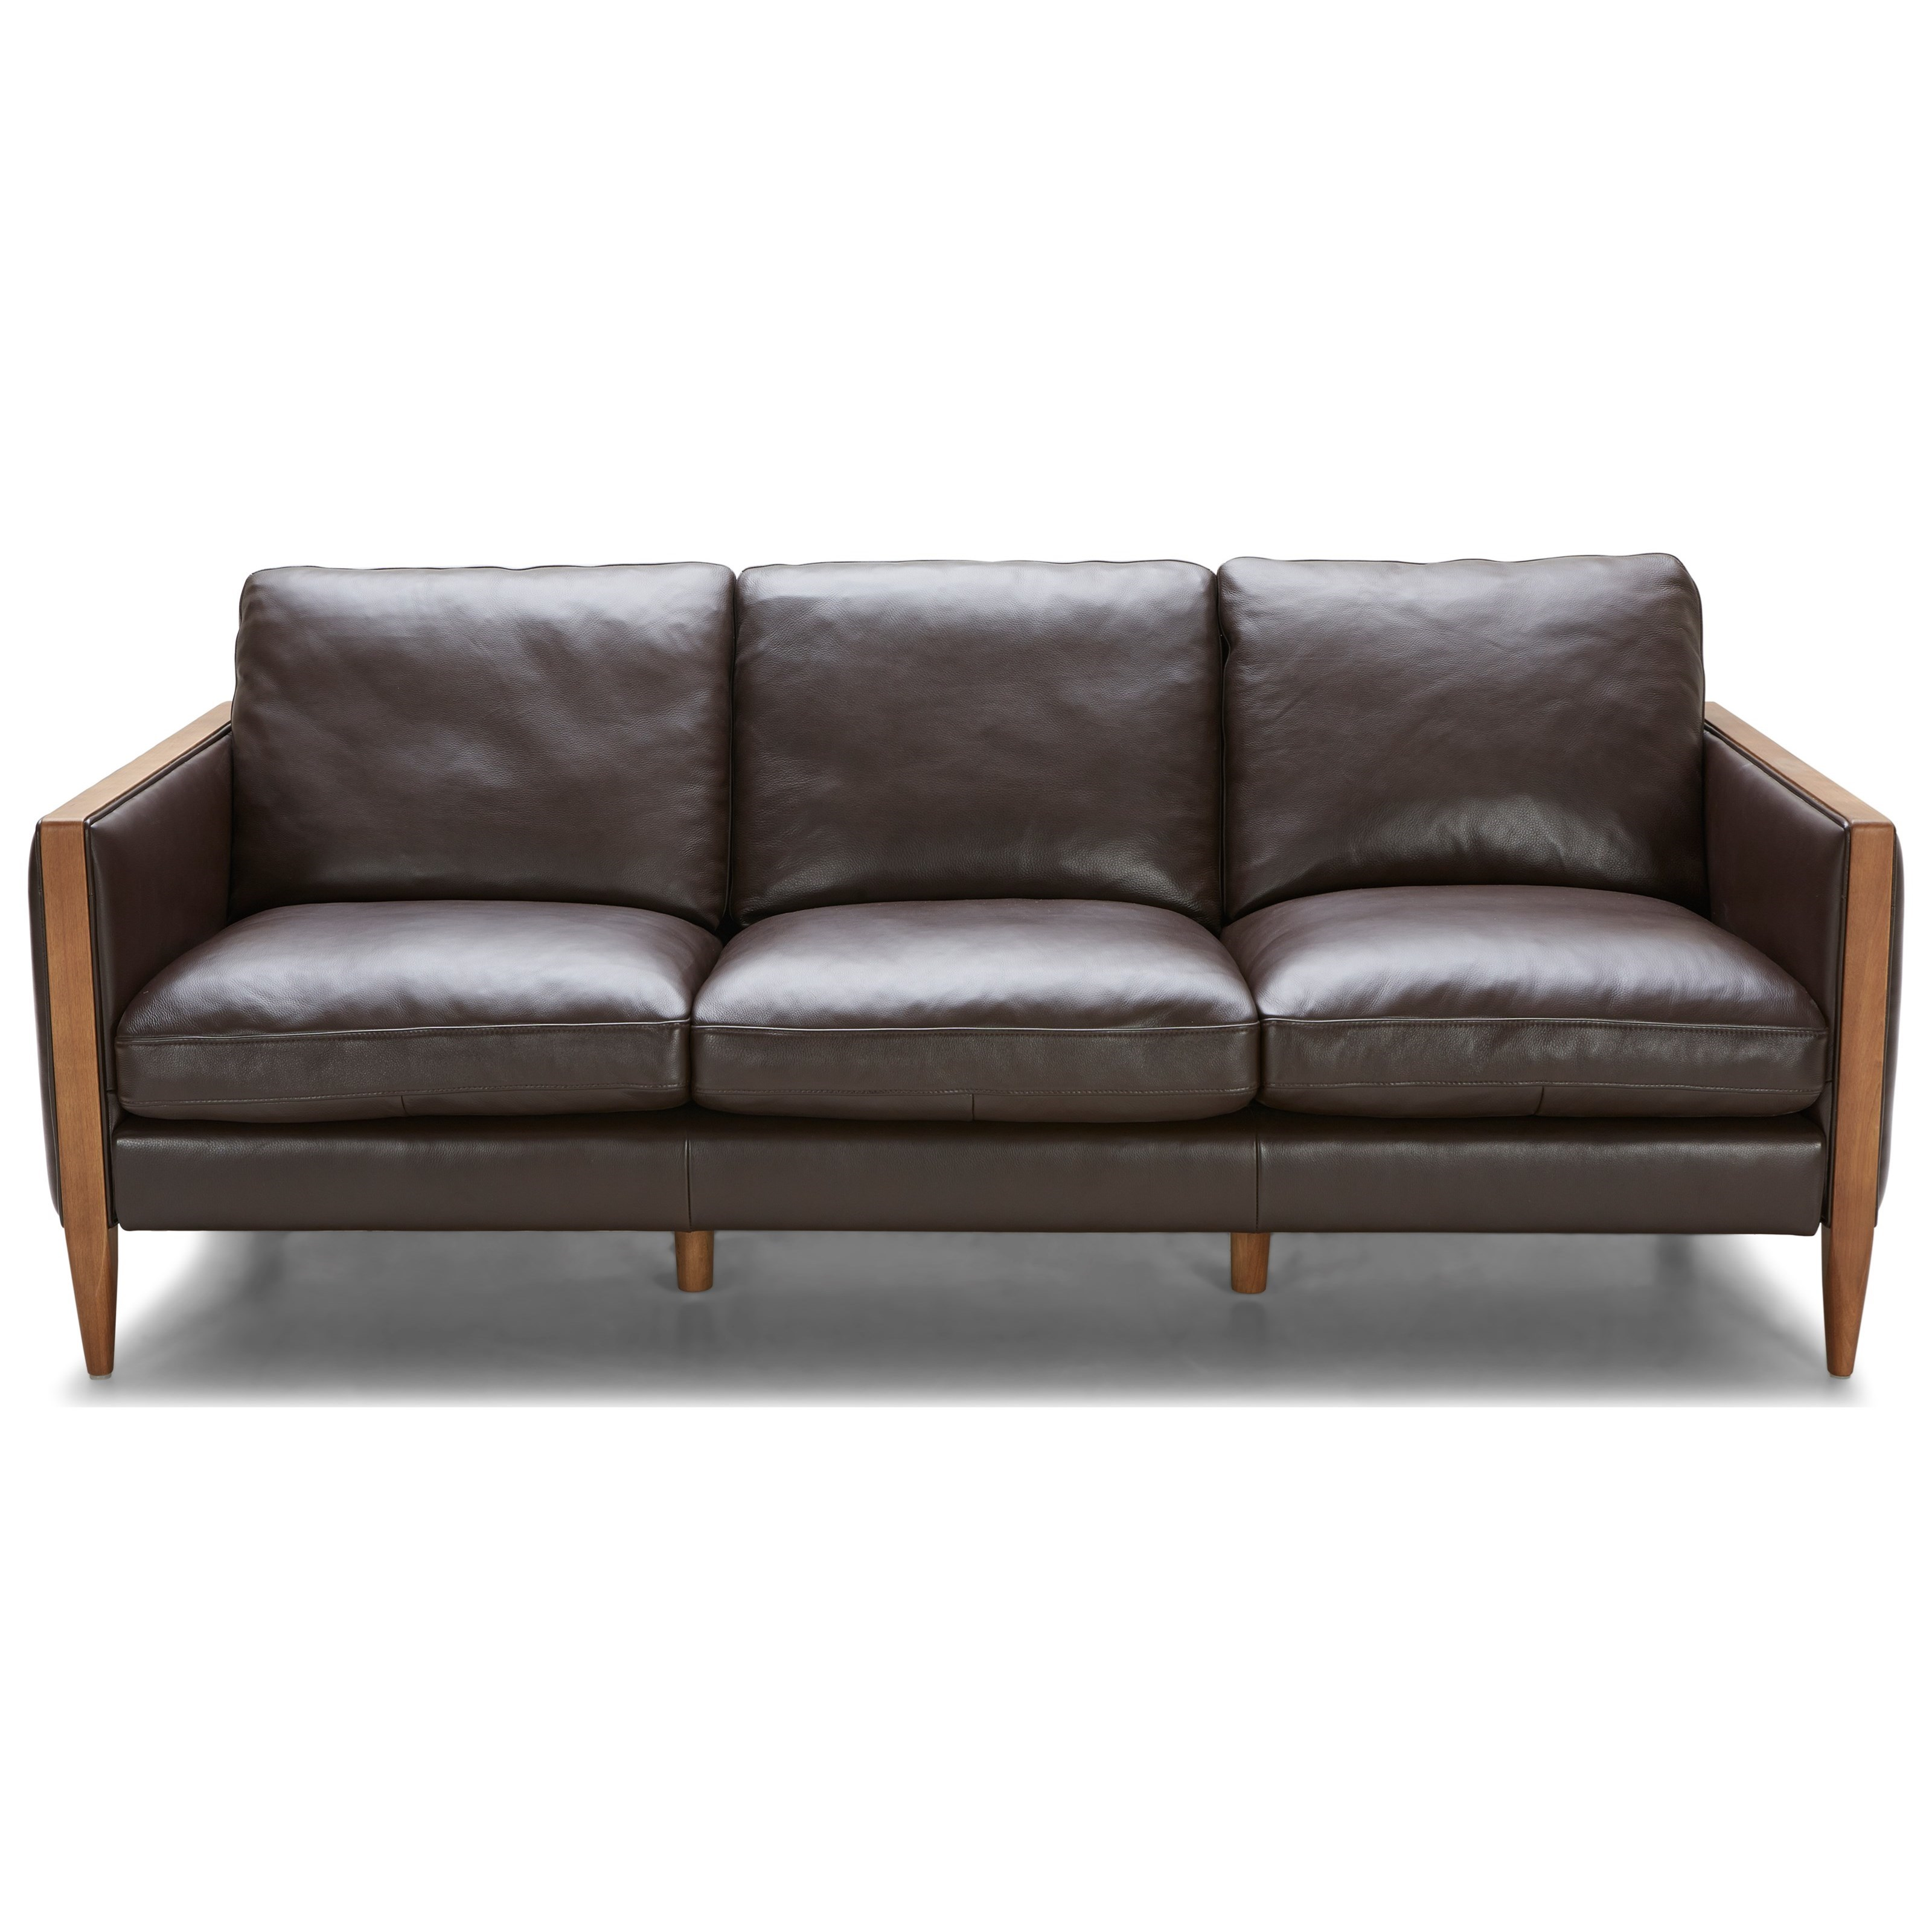 Urban Evolution Murphy Mid Century Modern Leather Sofa with